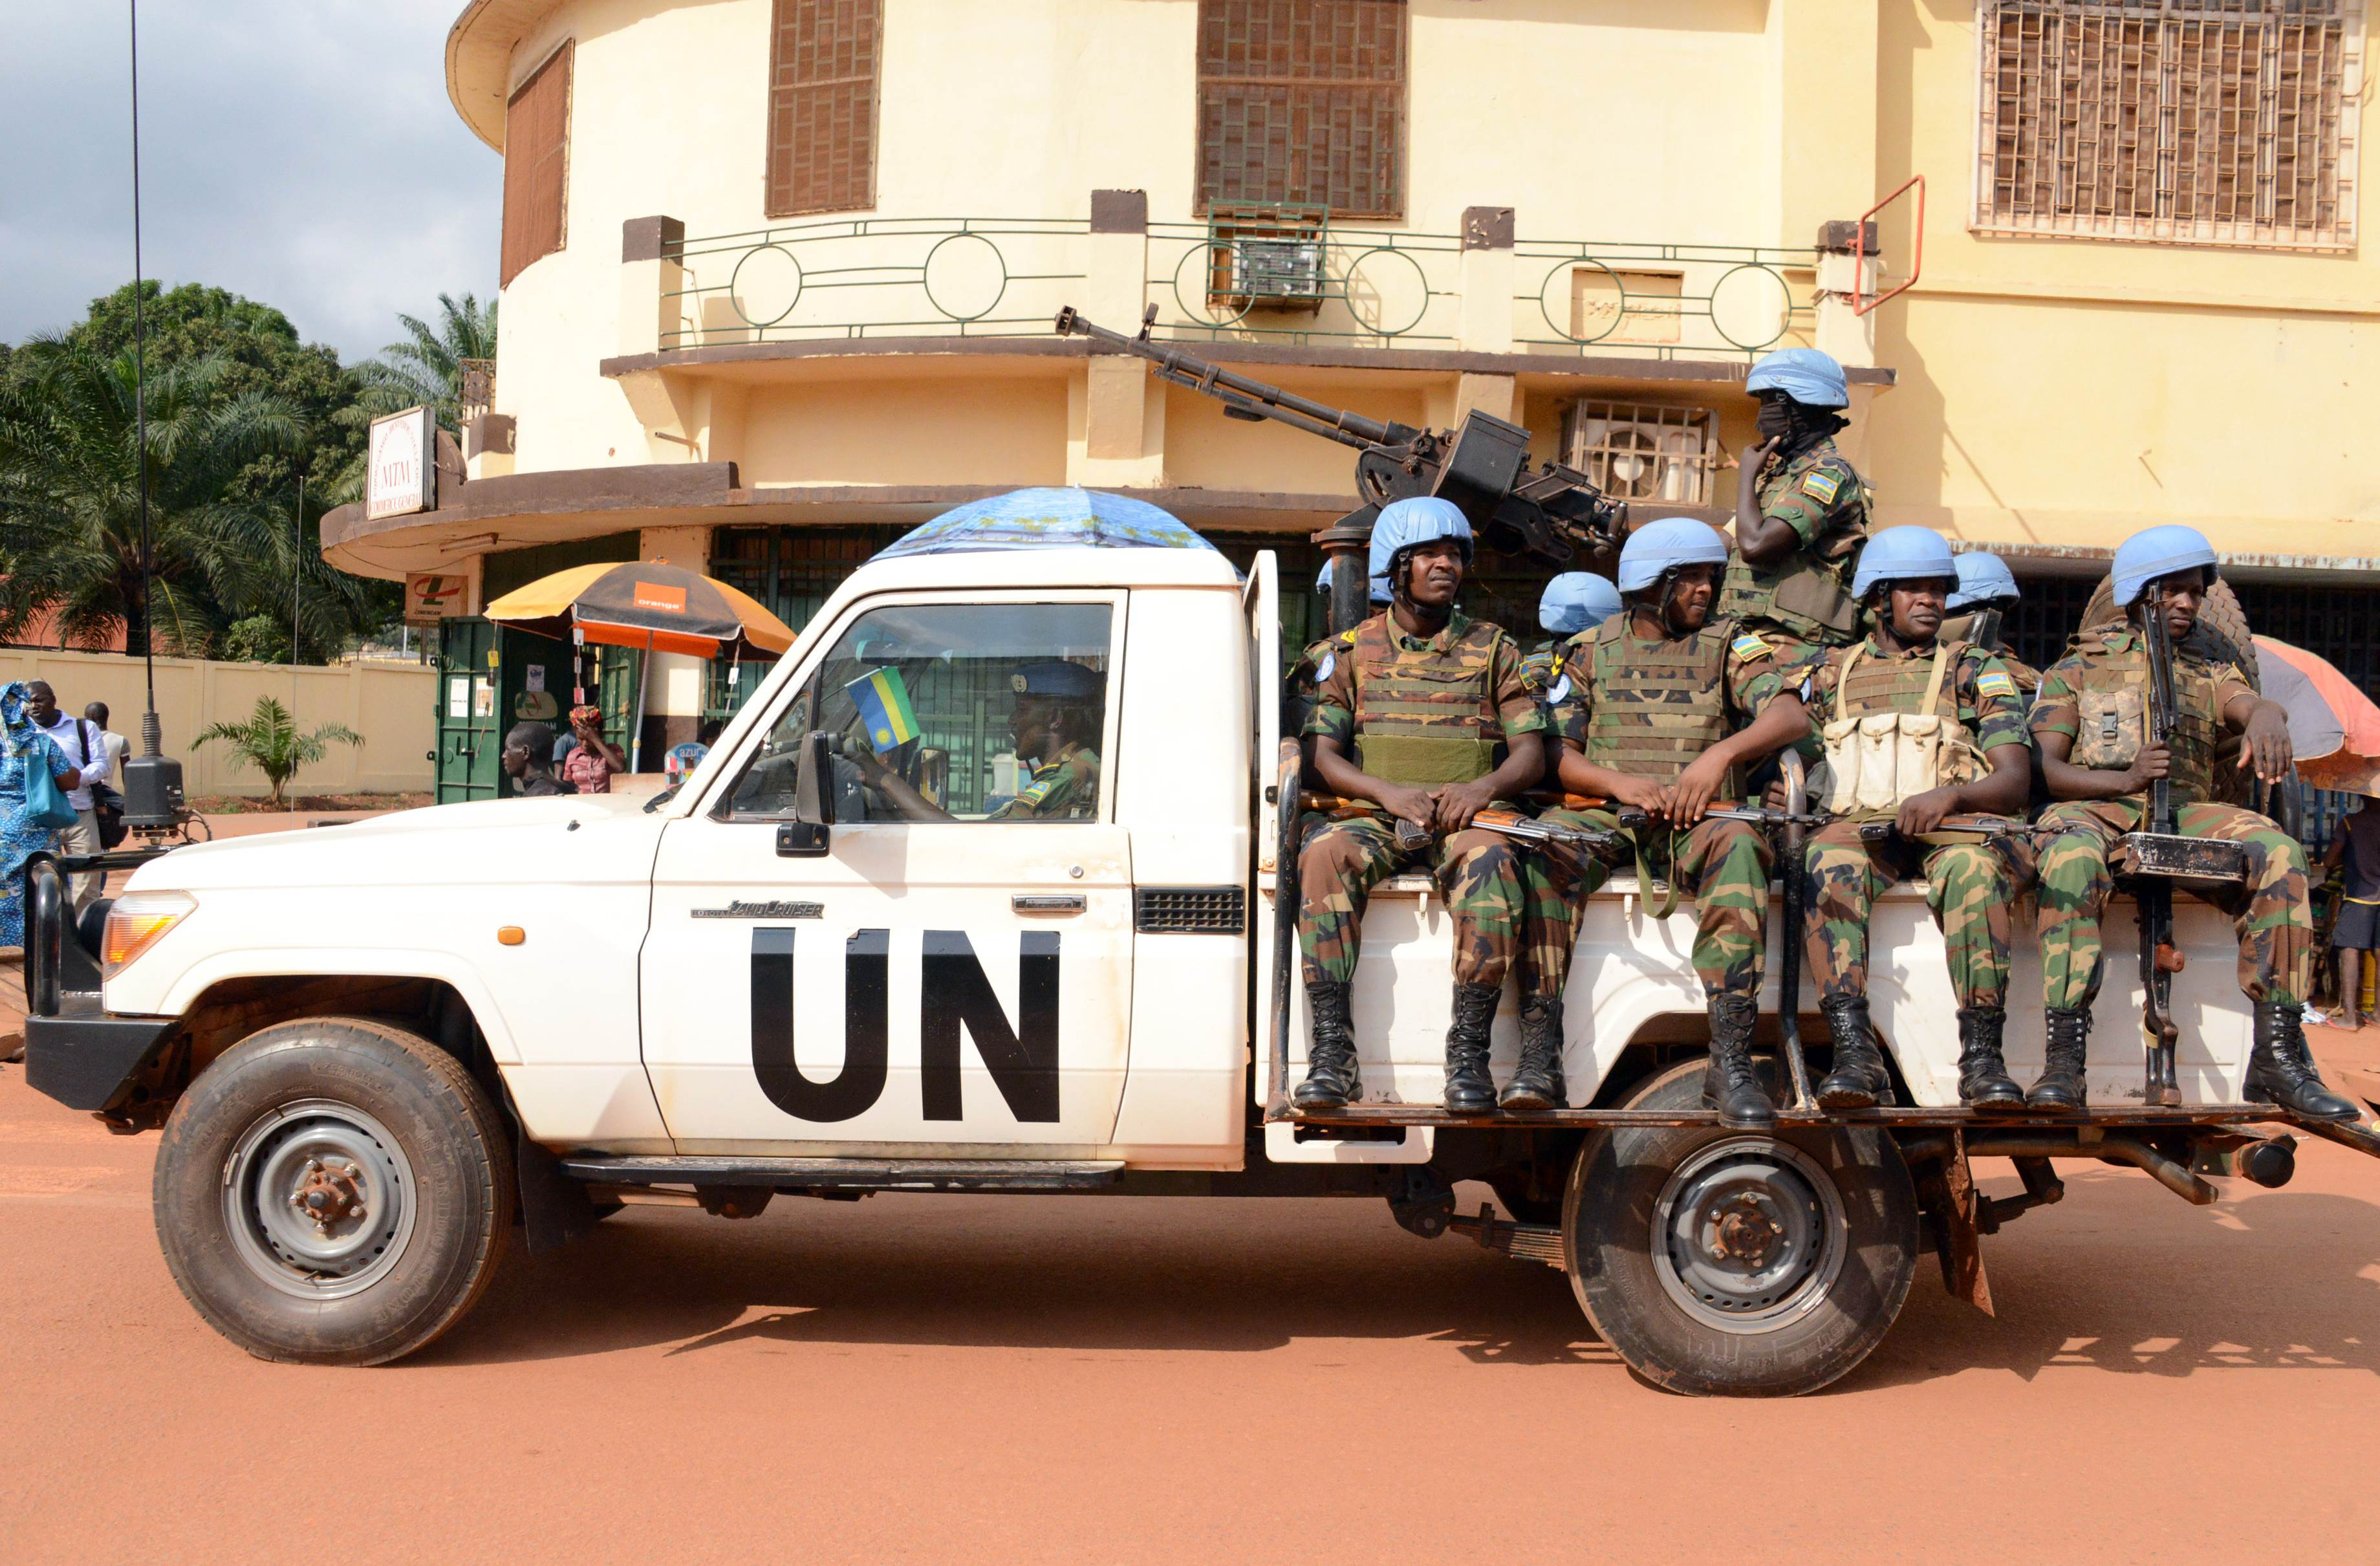 U.N. peacekeeping soldiers from Rwanda patrol in December in Bangui. A Rwandan U.N. peacekeeper in the Central African Republic shot dead four colleagues on August 7 and injured eight others before being gunned down, military sources said. It was the worst such incident to hit the U.N. peacekeeping mission in the country, known by its French acronym of MINUSCA, since it was deployed in September following inter-religious clashes that claimed hundreds of lives. Two deaths and a girl's rape in Bangui have also been blamed on U.N. peacekeepers.   AFP-JIJI